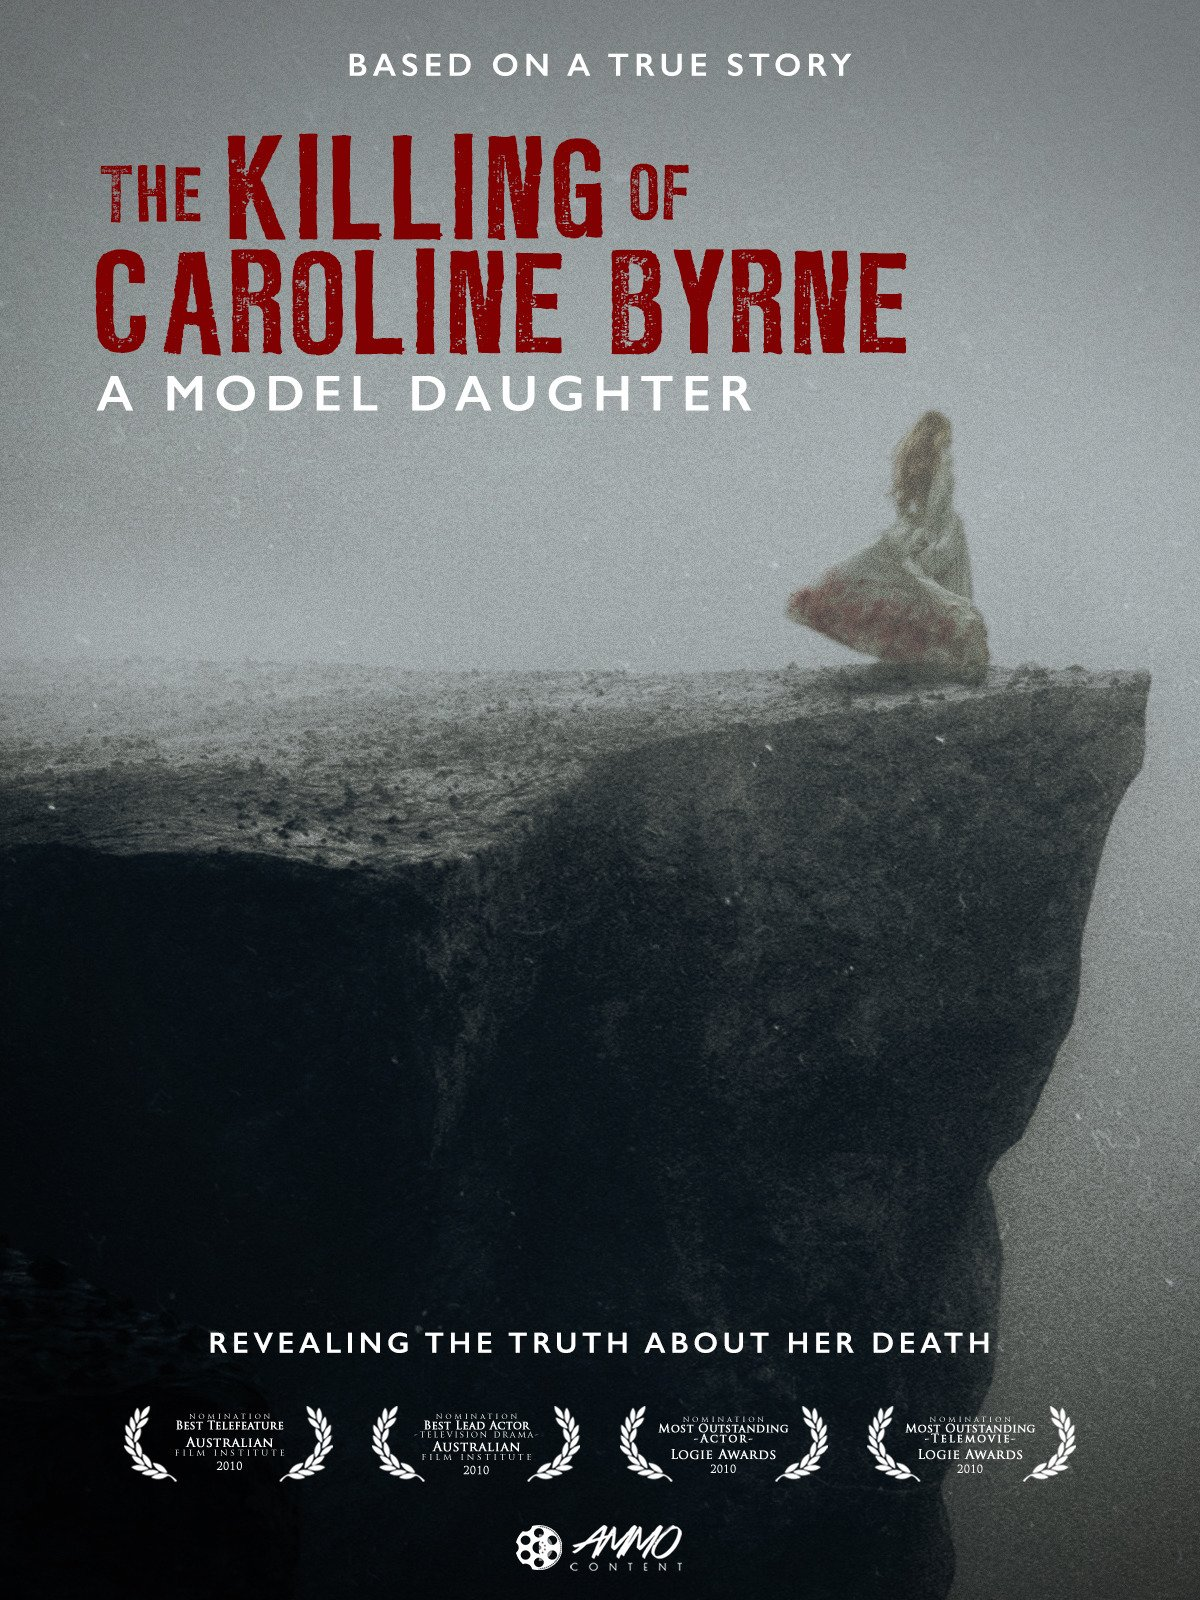 A Model Daughter: The Killing Of Caroline Byre